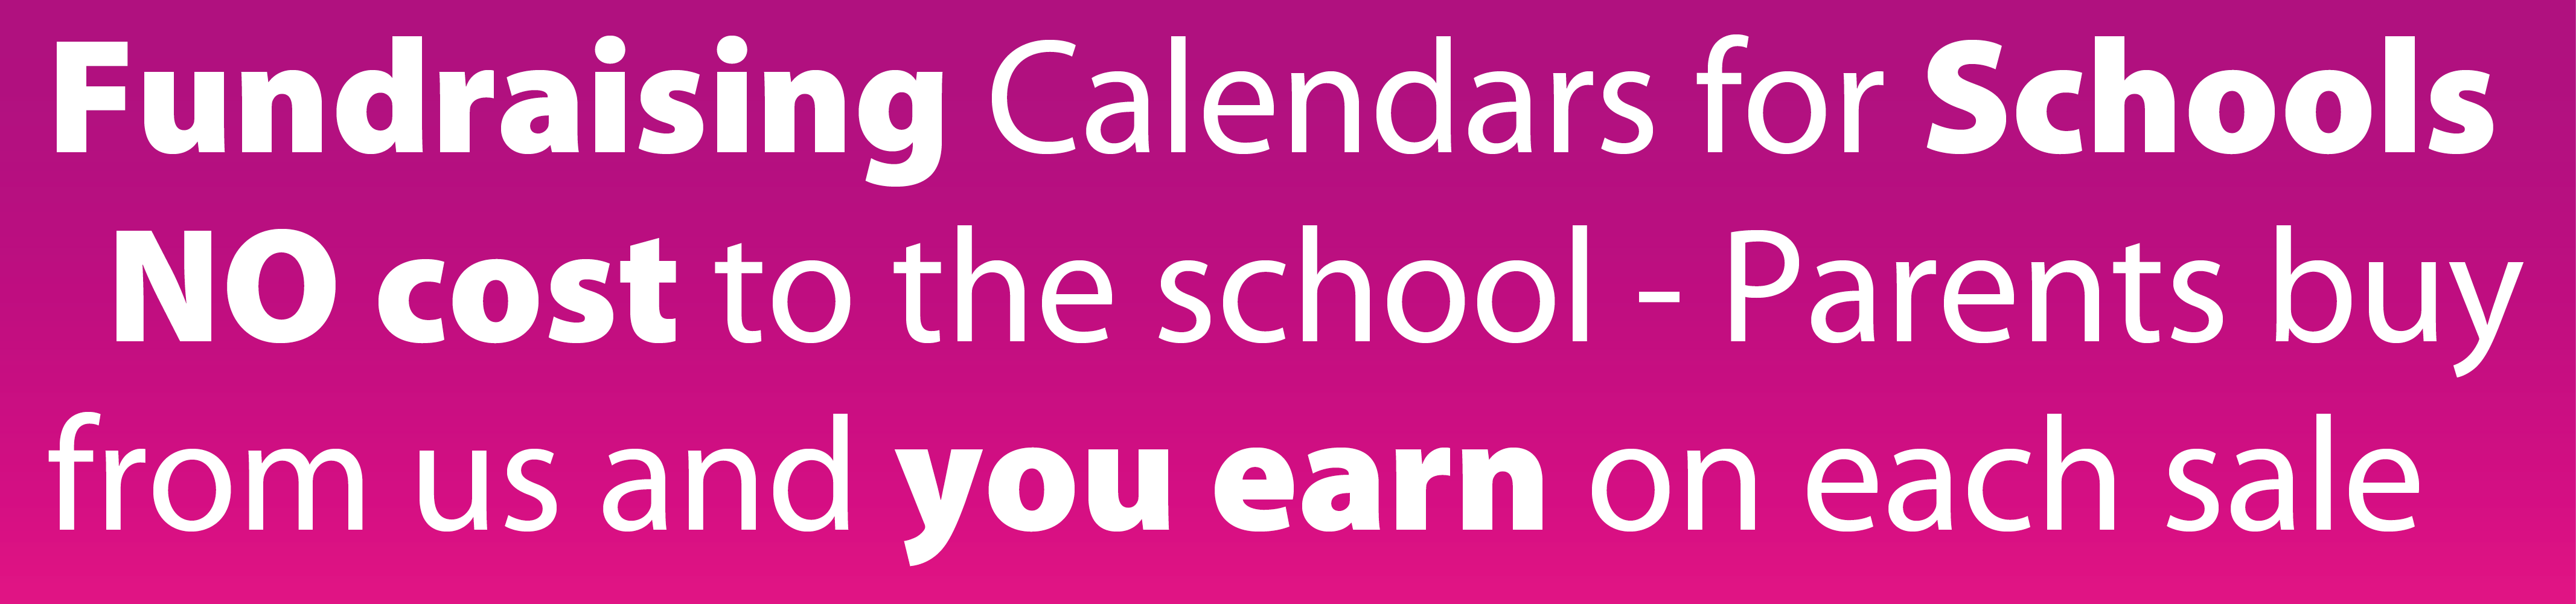 fundraising calendars for schools